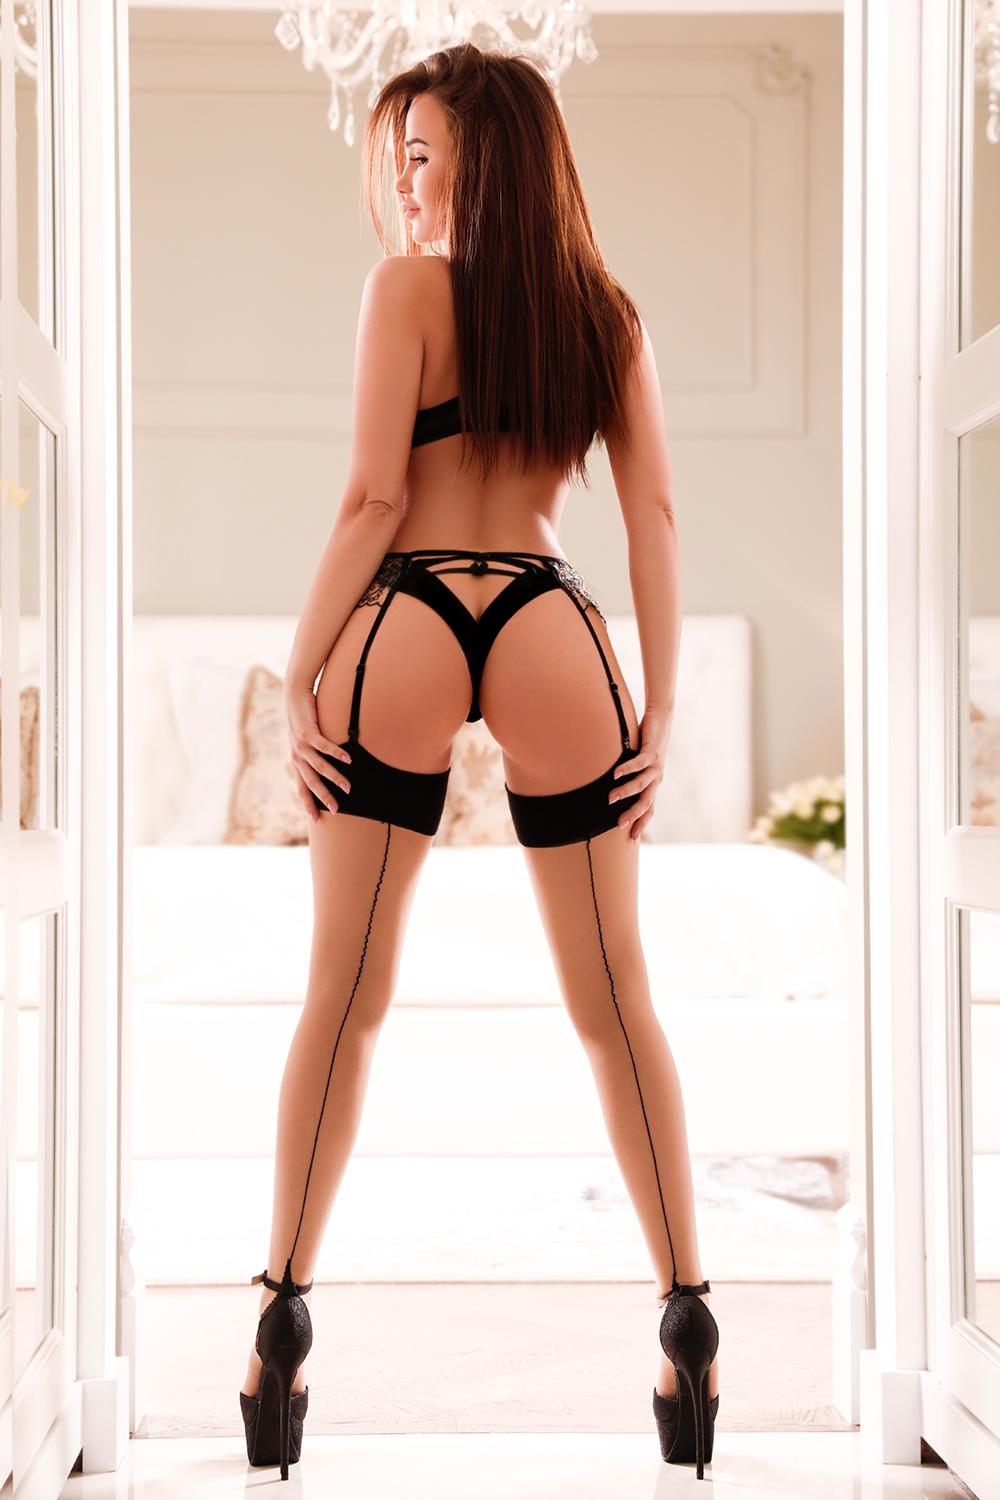 Anna from Pure Tantric Massage London